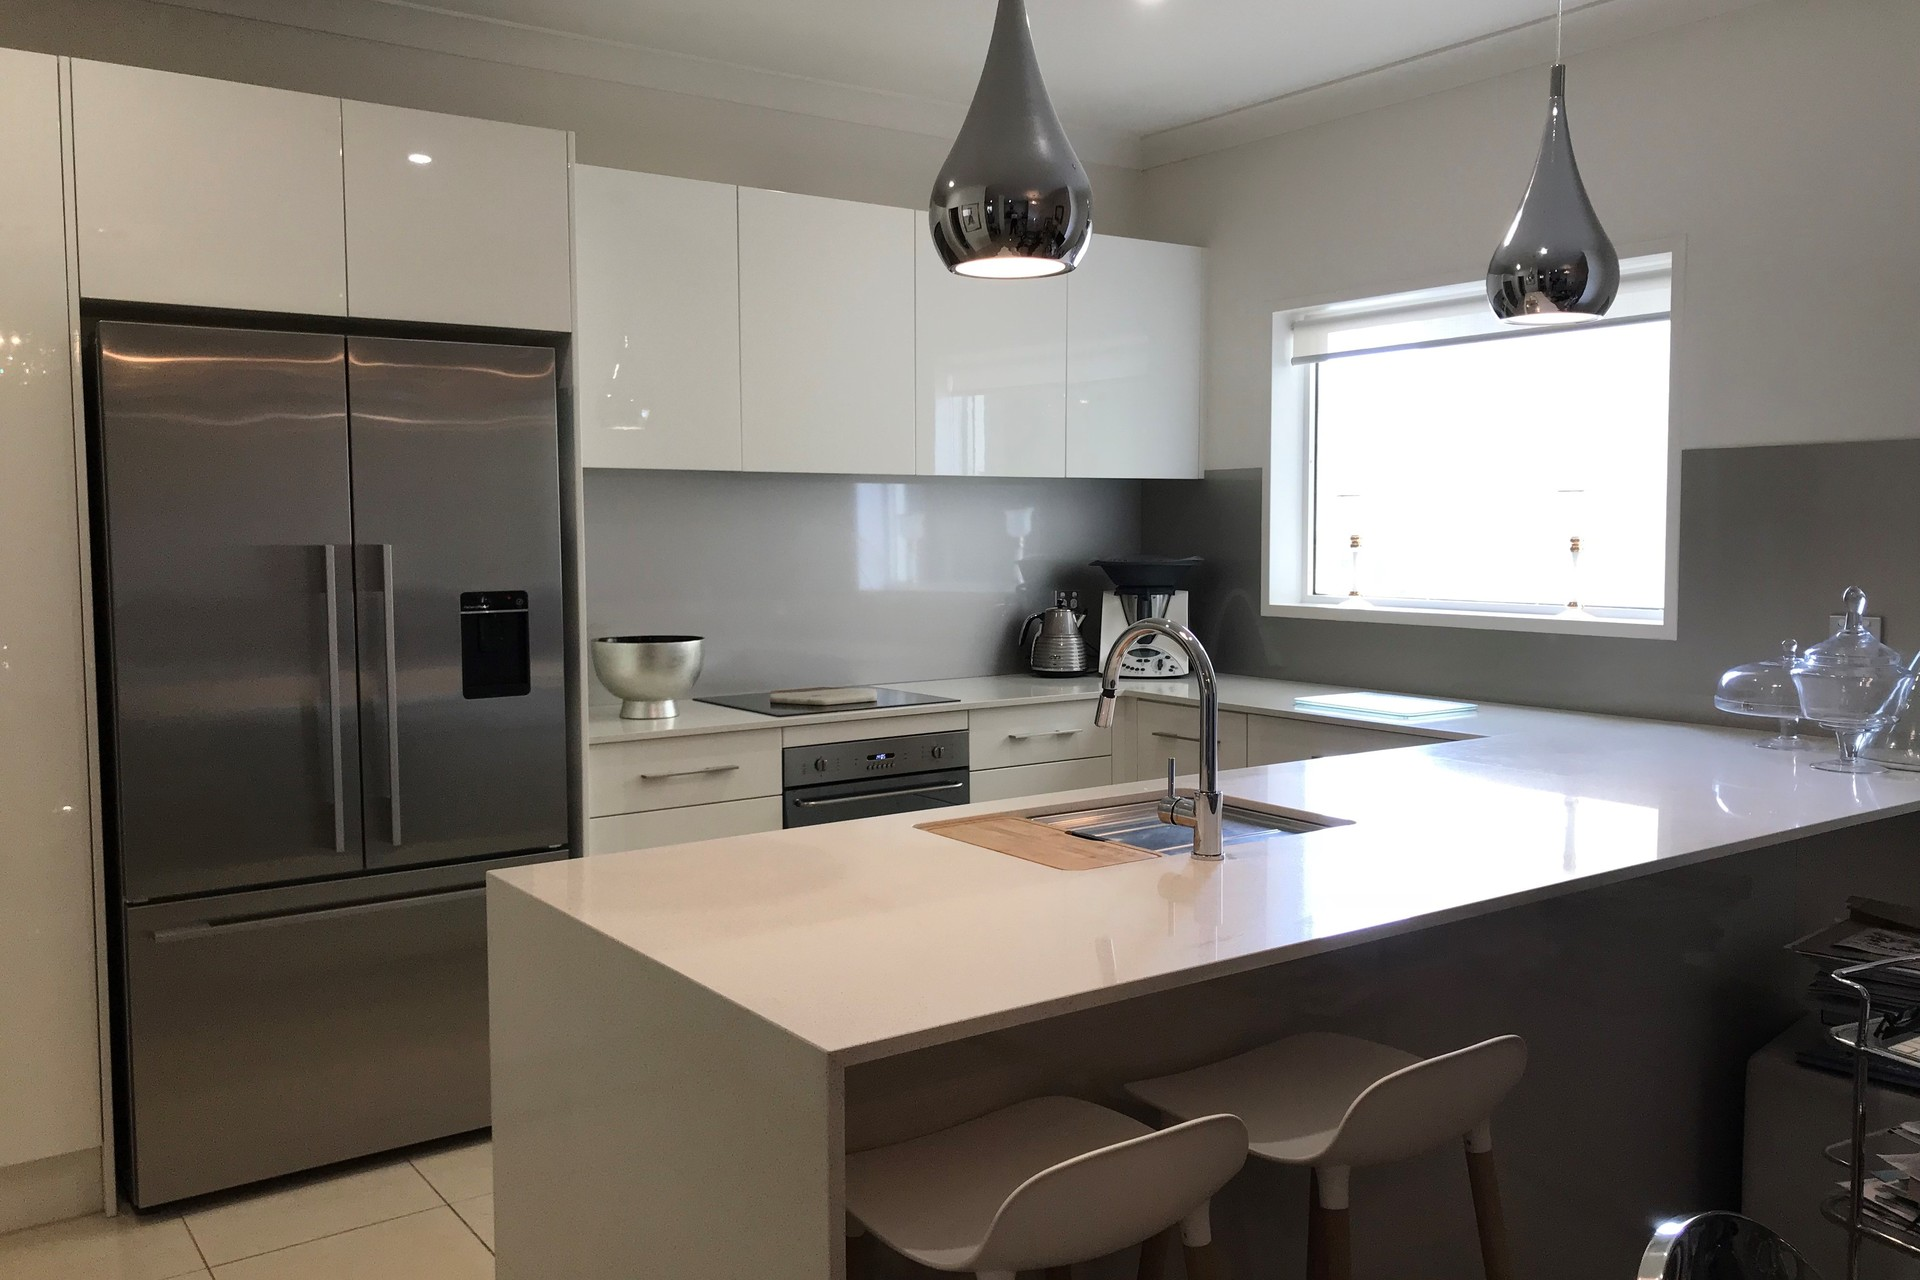 29/215 Darby Street Cooks Hill